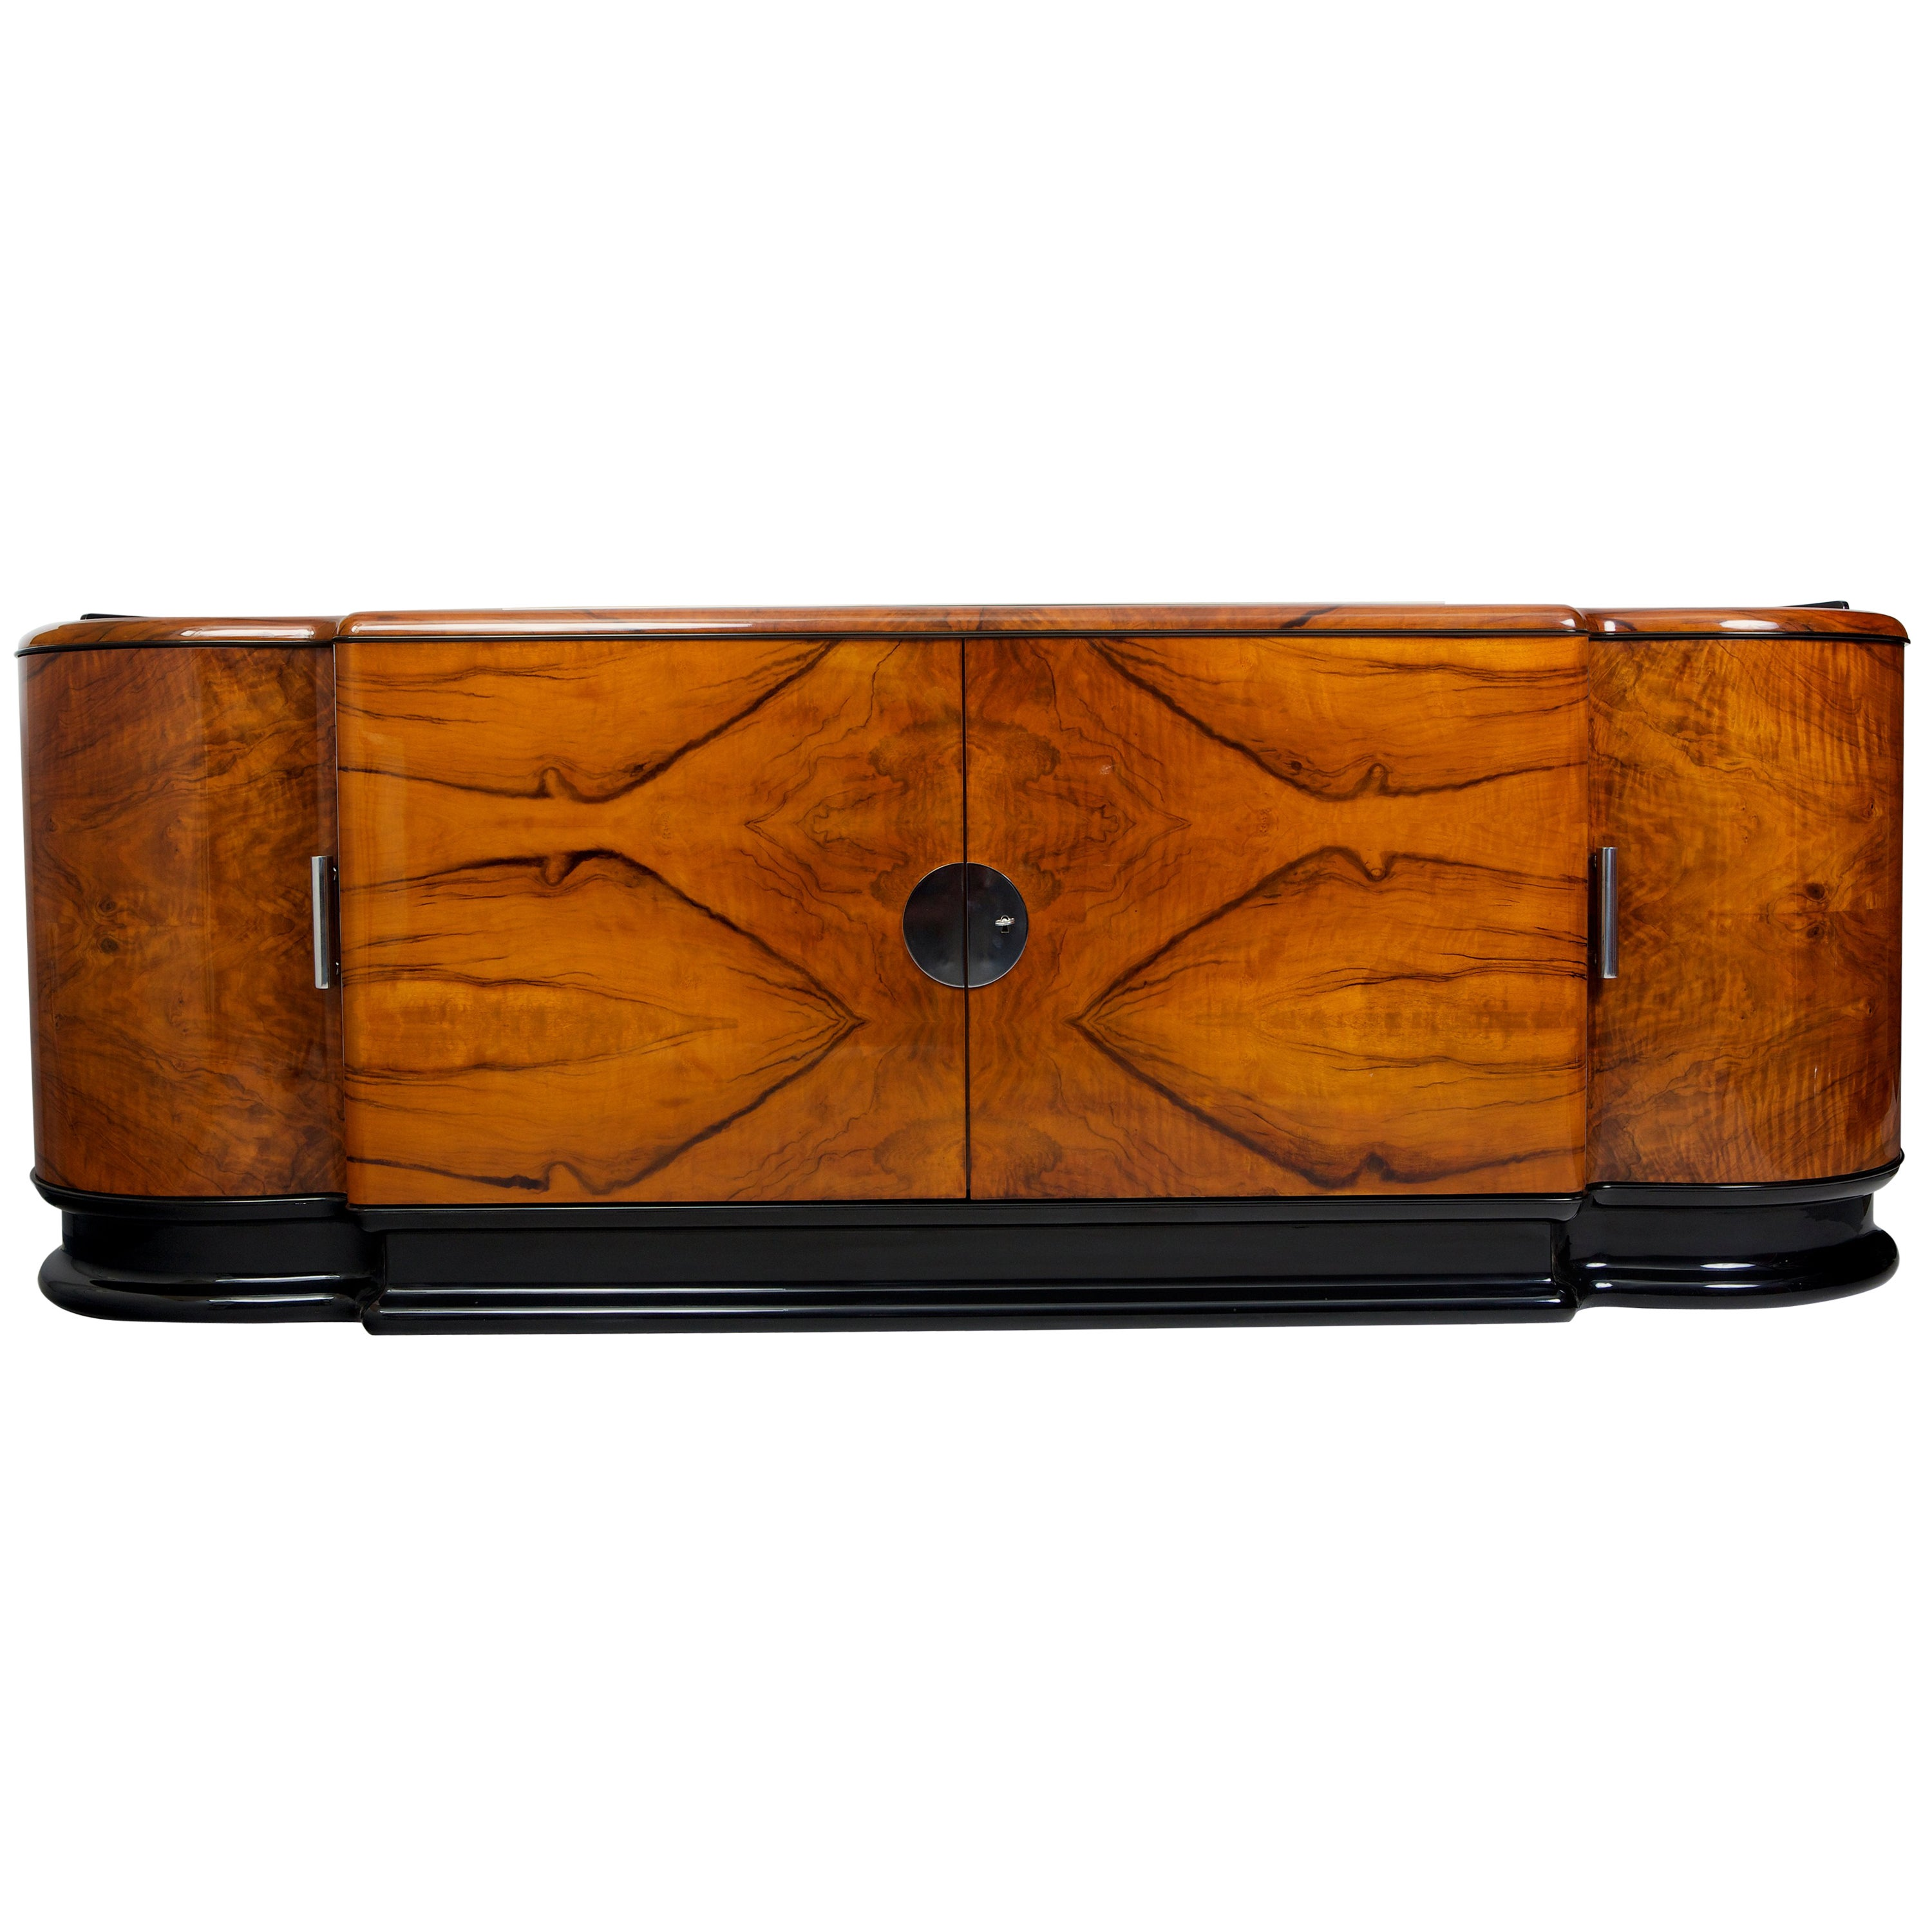 Unique walnut art deco functionalism saloon sideboard from czechoslovakia for sale at 1stdibs